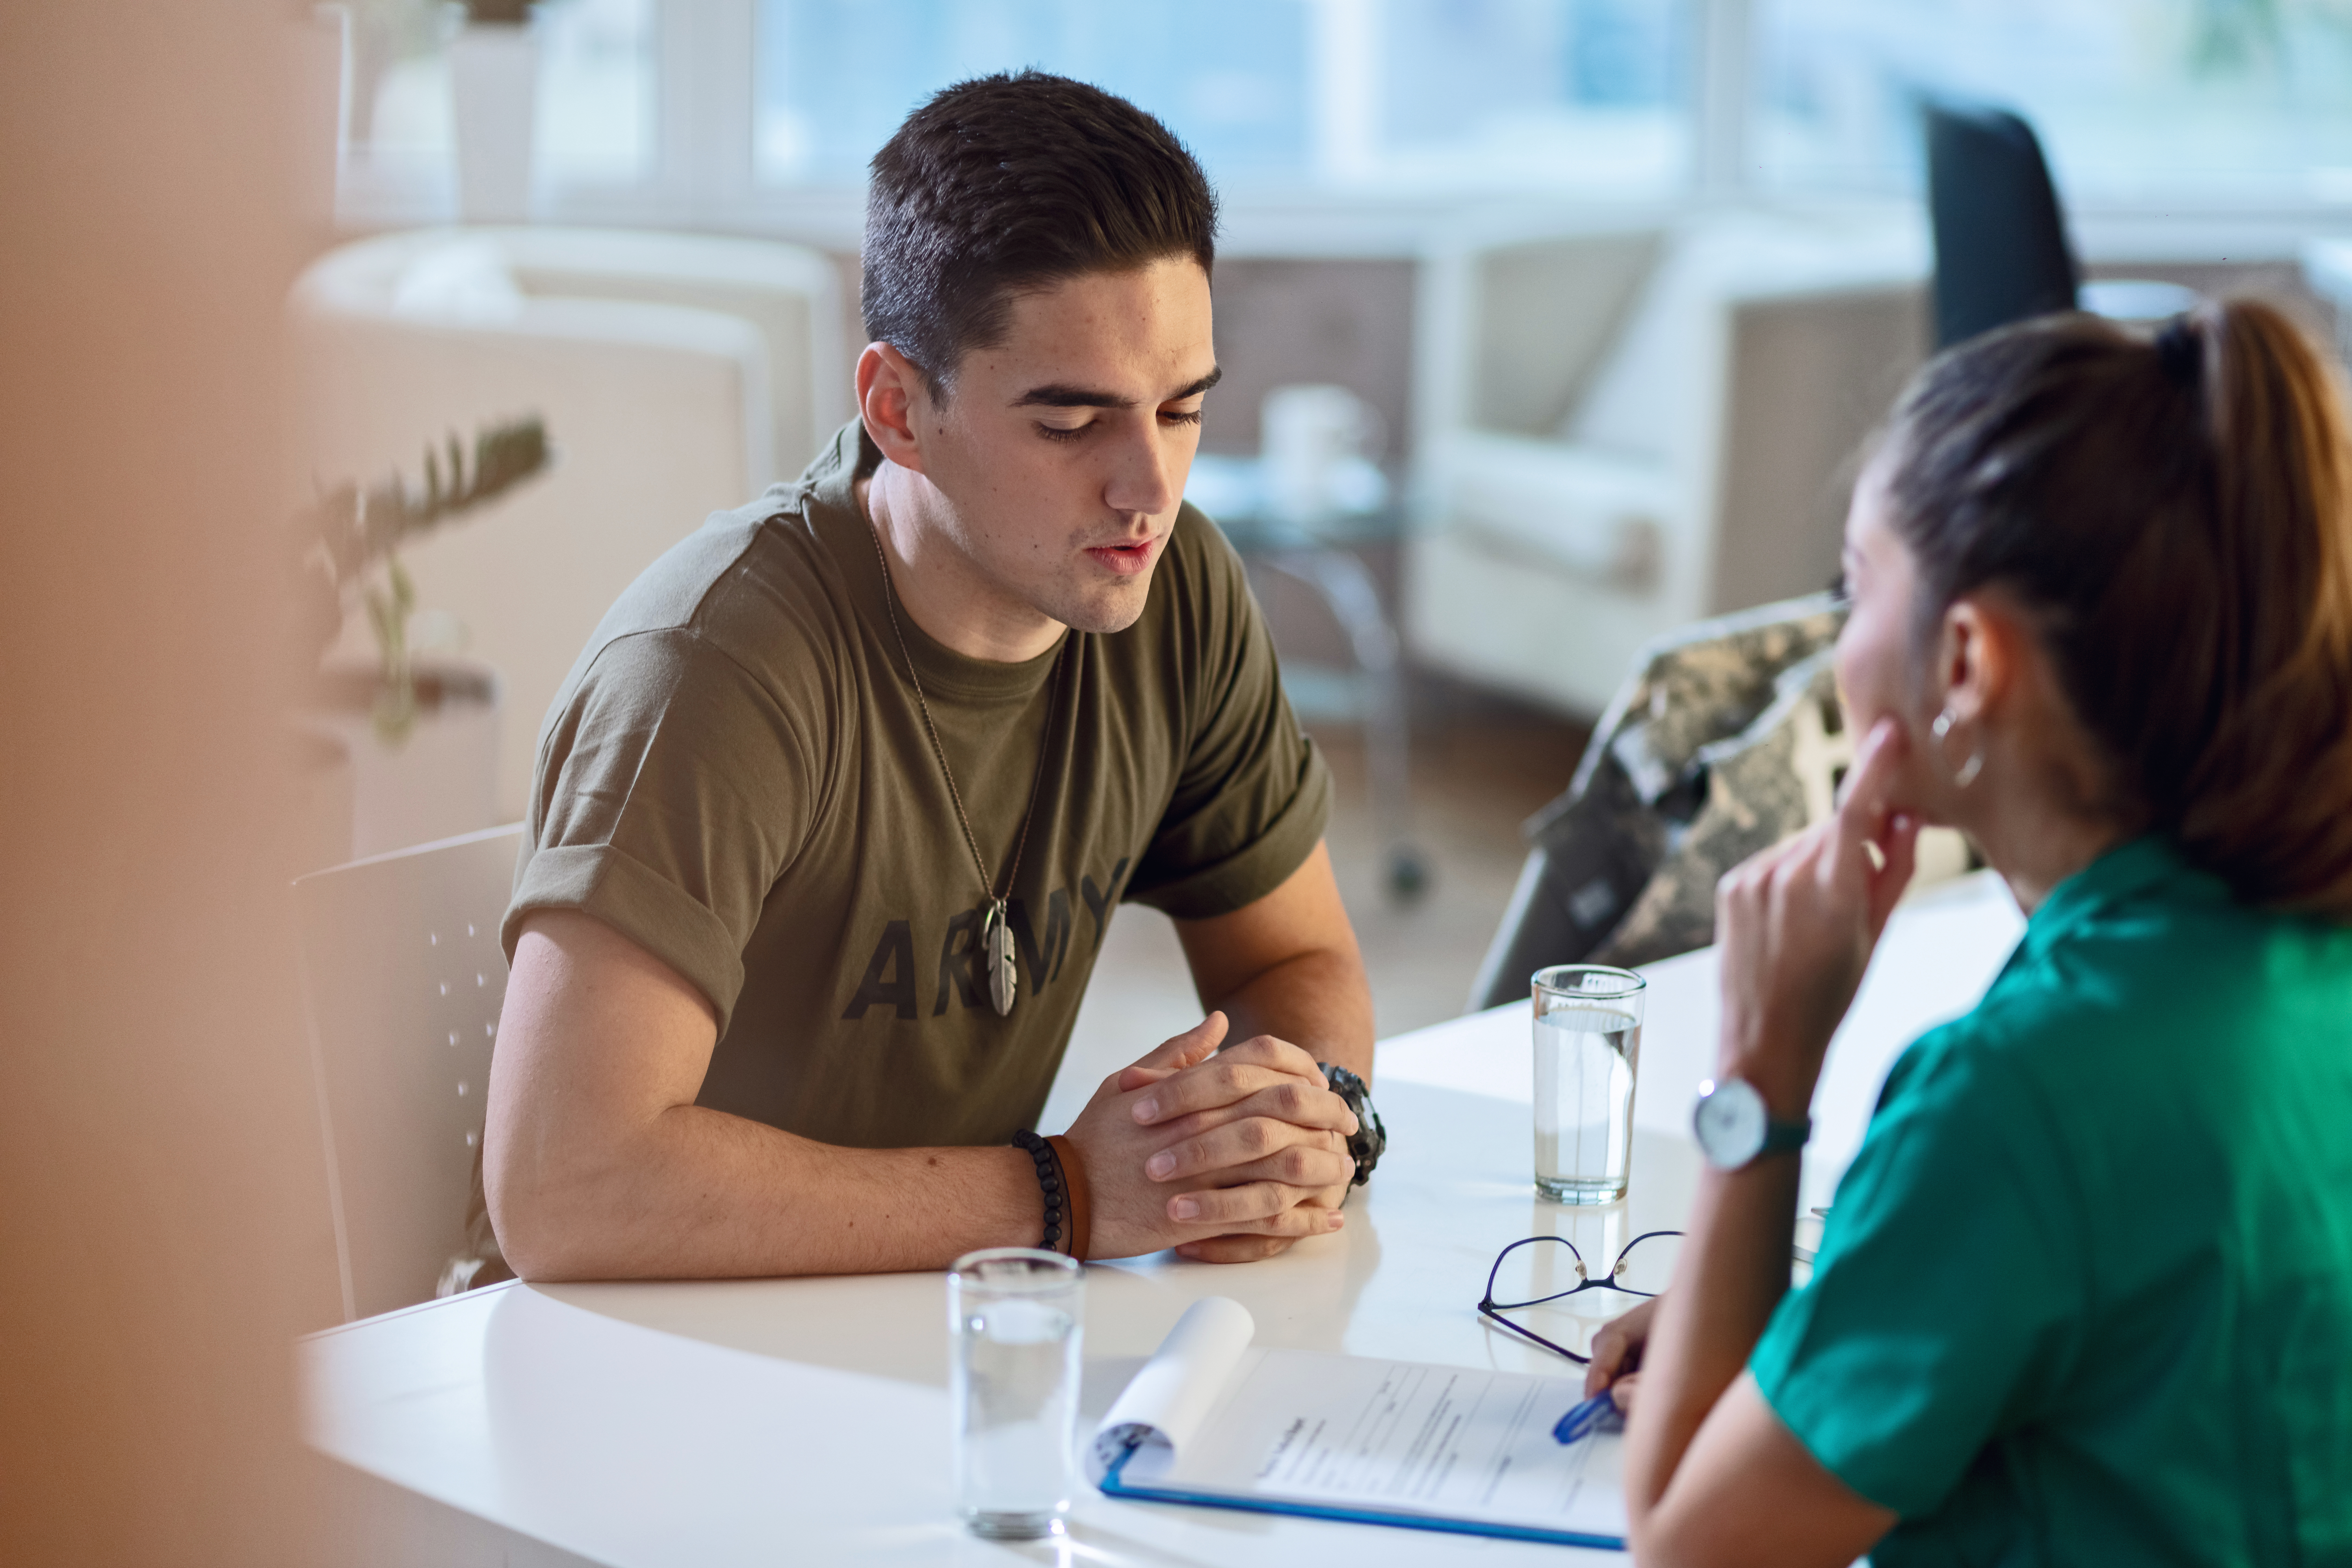 Is 45 Too Old to Go Join the Military As an RN? | Chron com